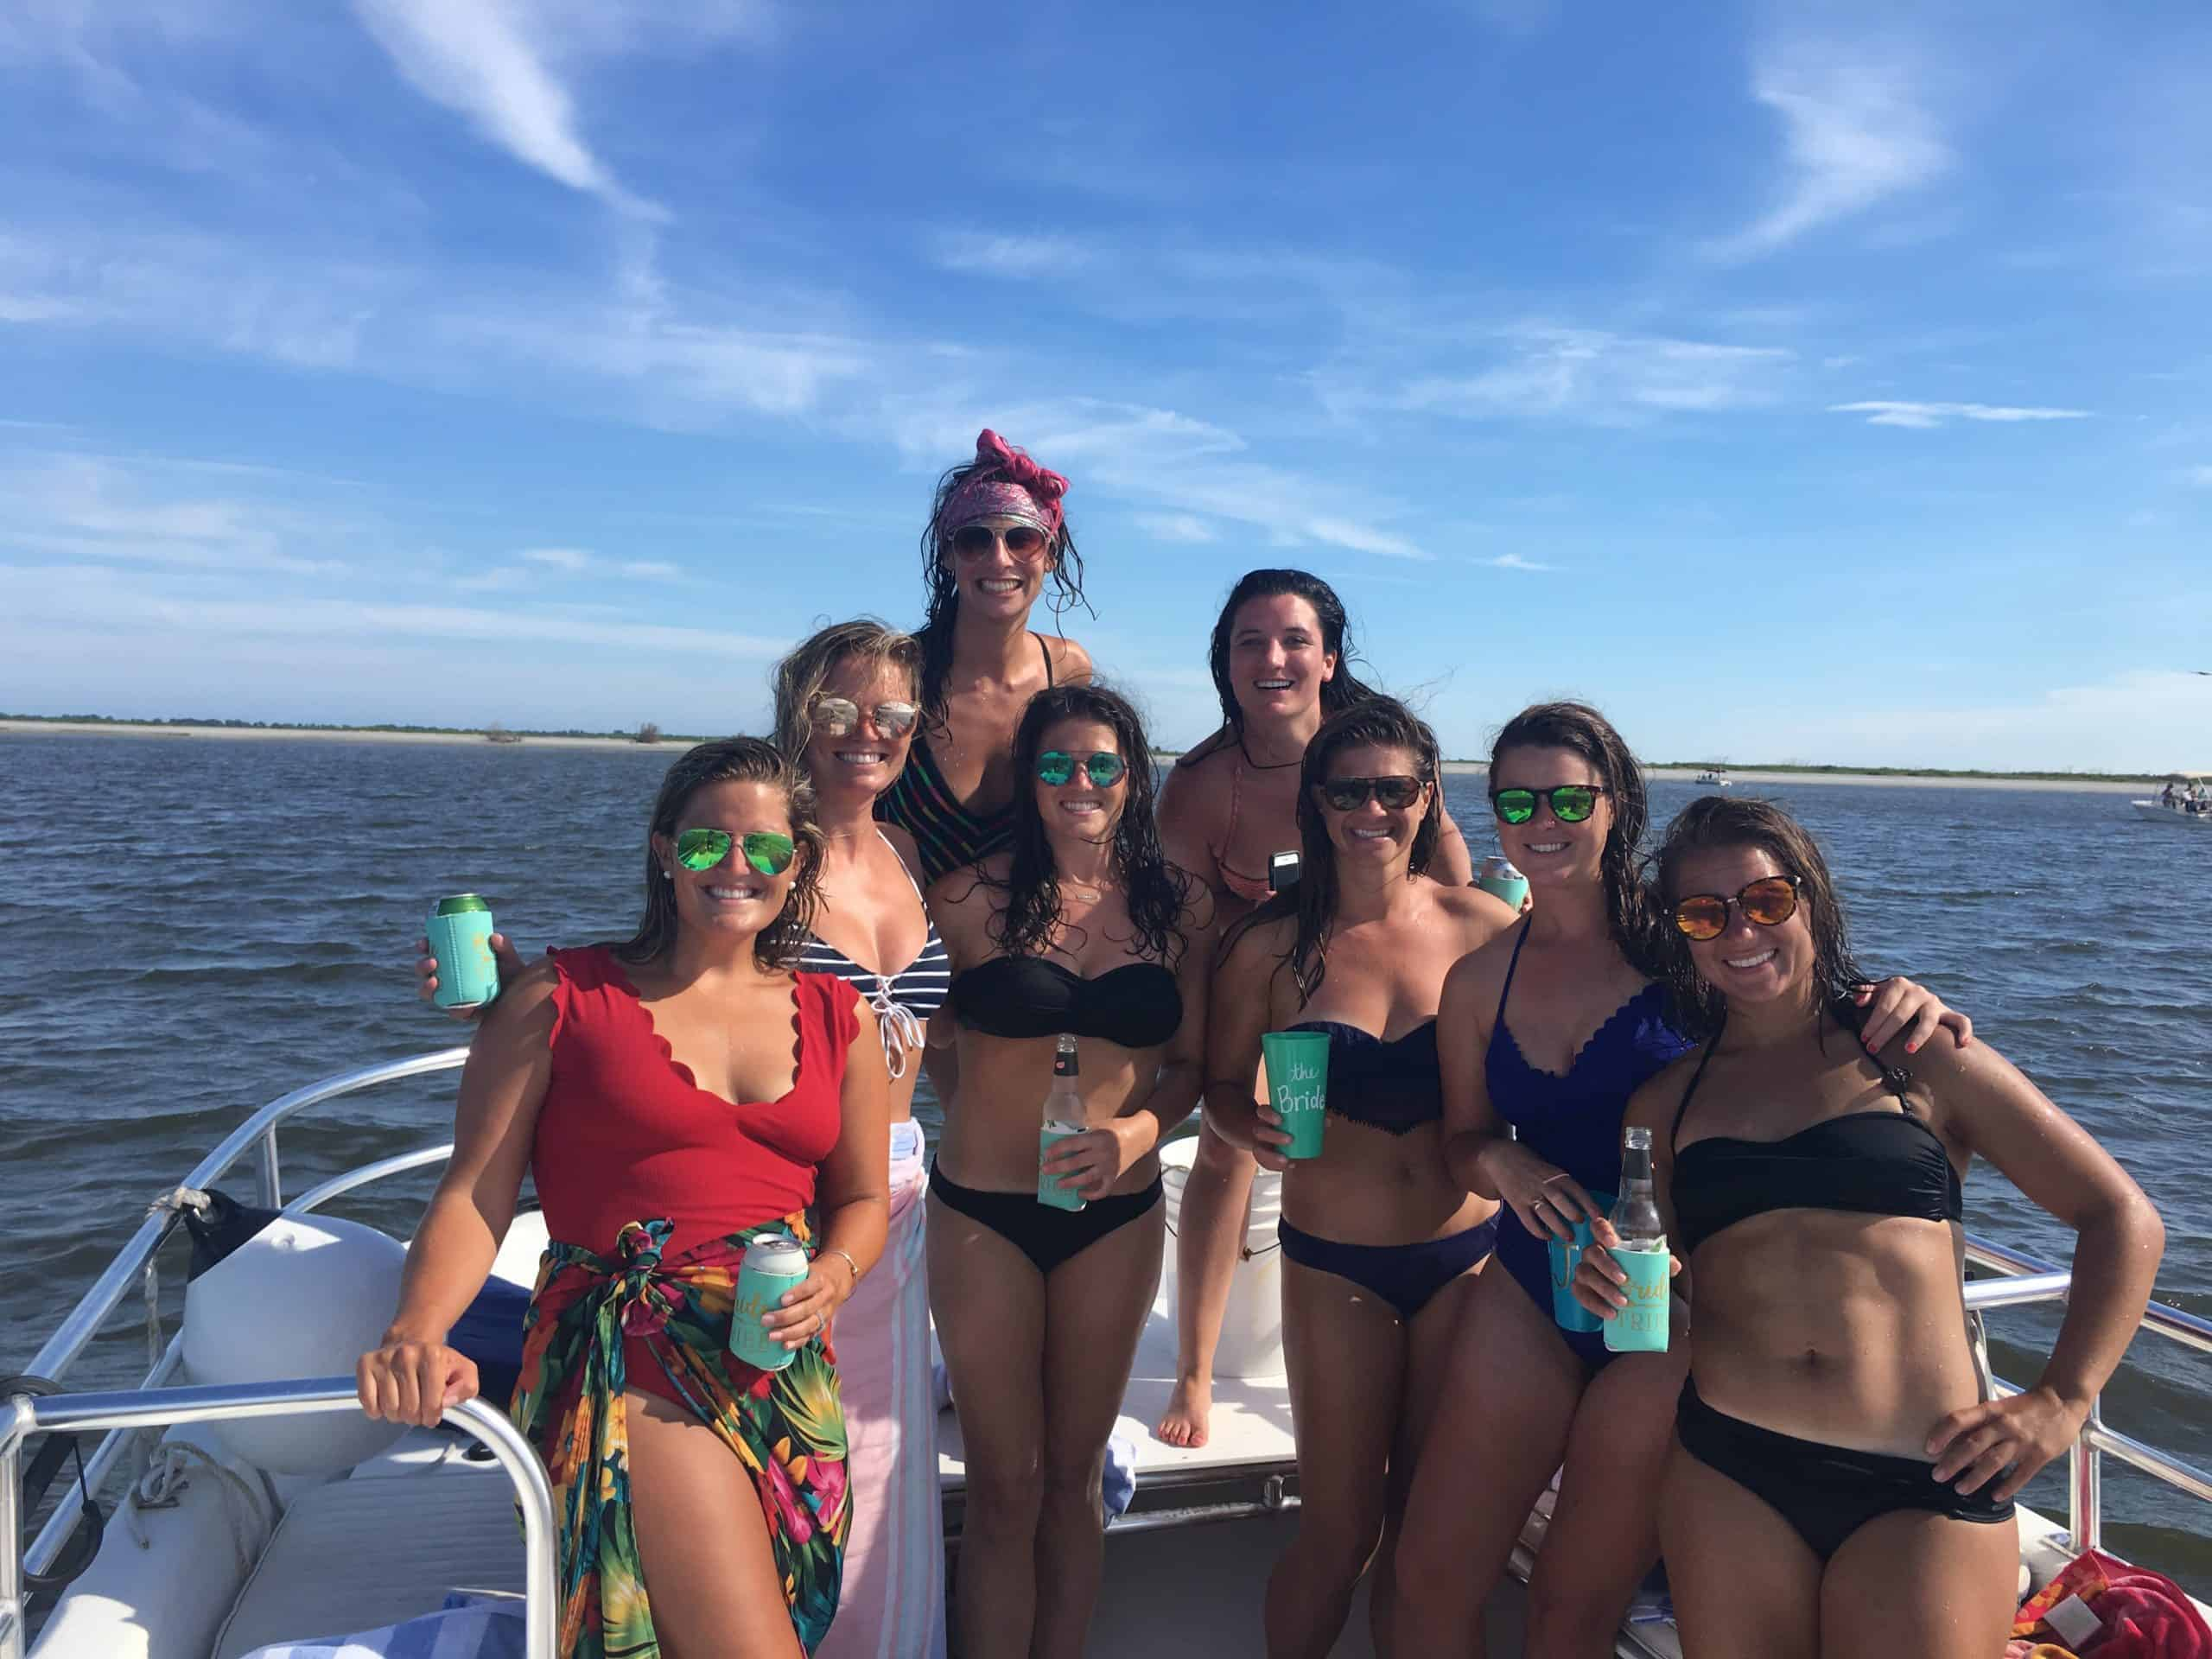 Group of women gathered on the boat for a drink after swimming in the water. Charleston booze cruise bachelorette